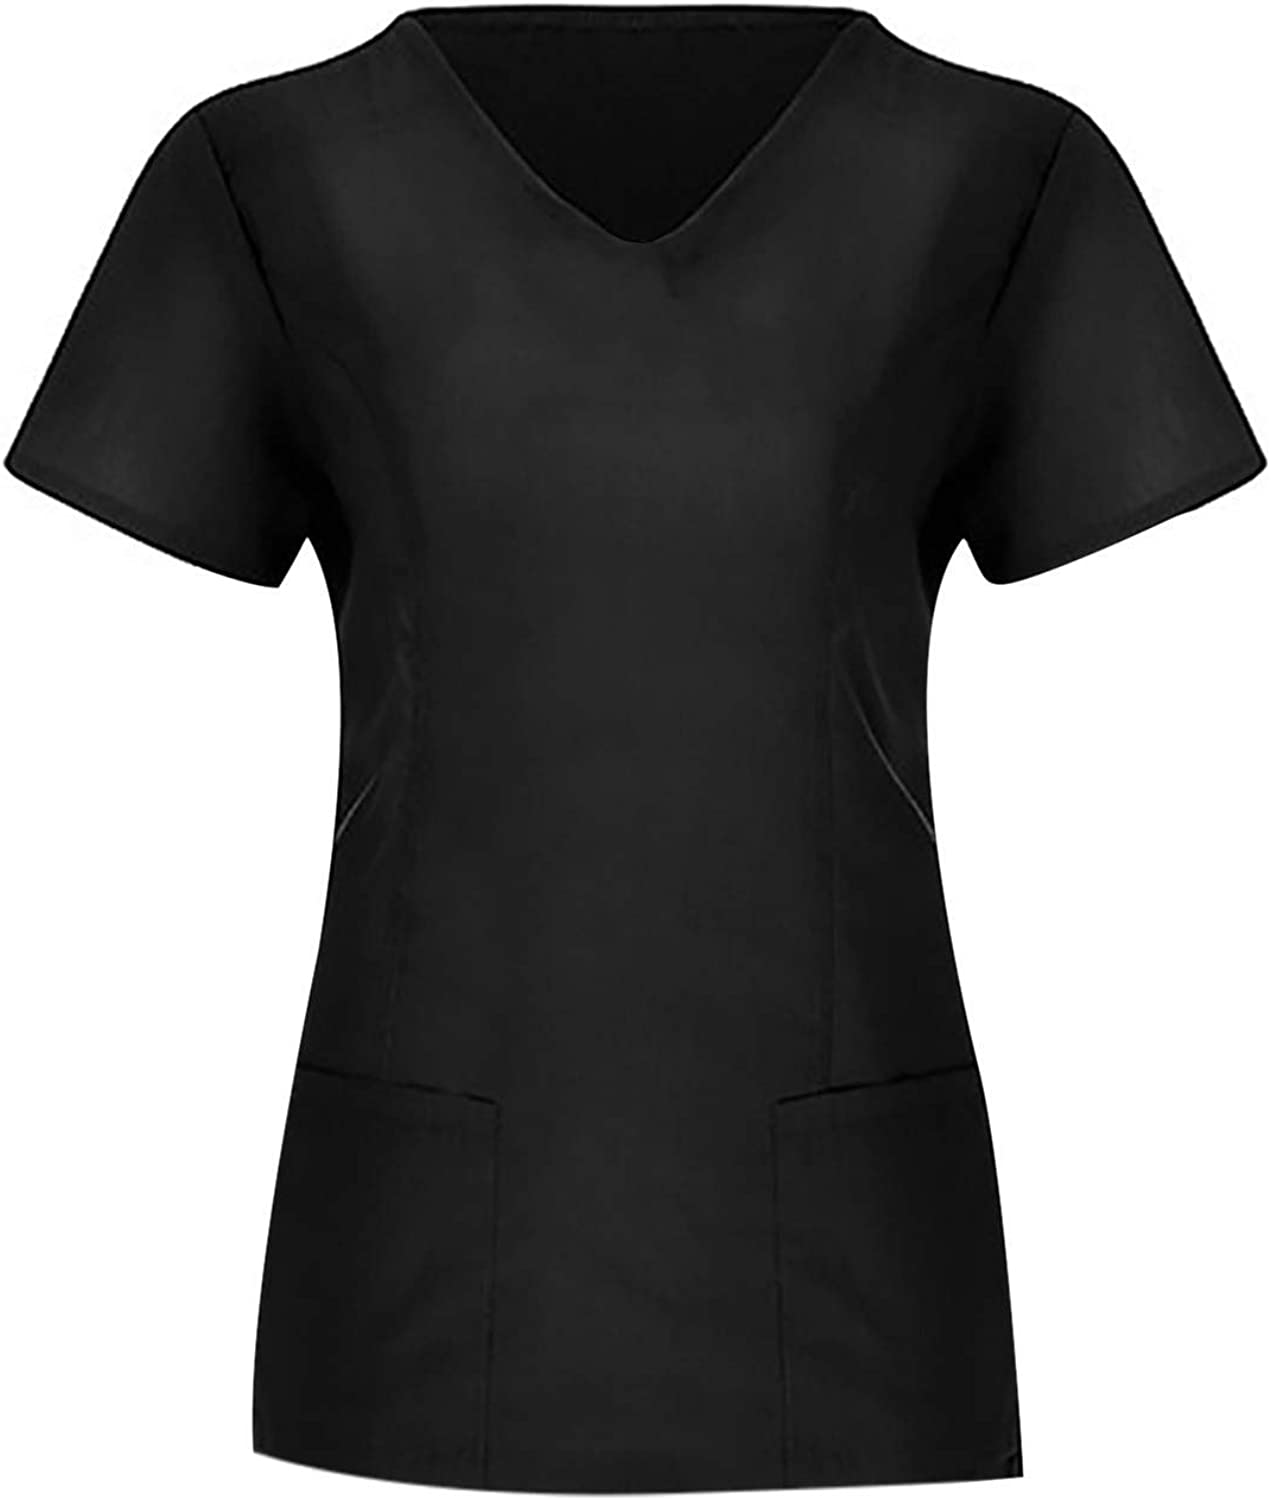 Women's Short Sleeve V Neck Solid Color Tee Shirts Workwear Scrub_Tops Working Uniform Tops Blouse with Pockets